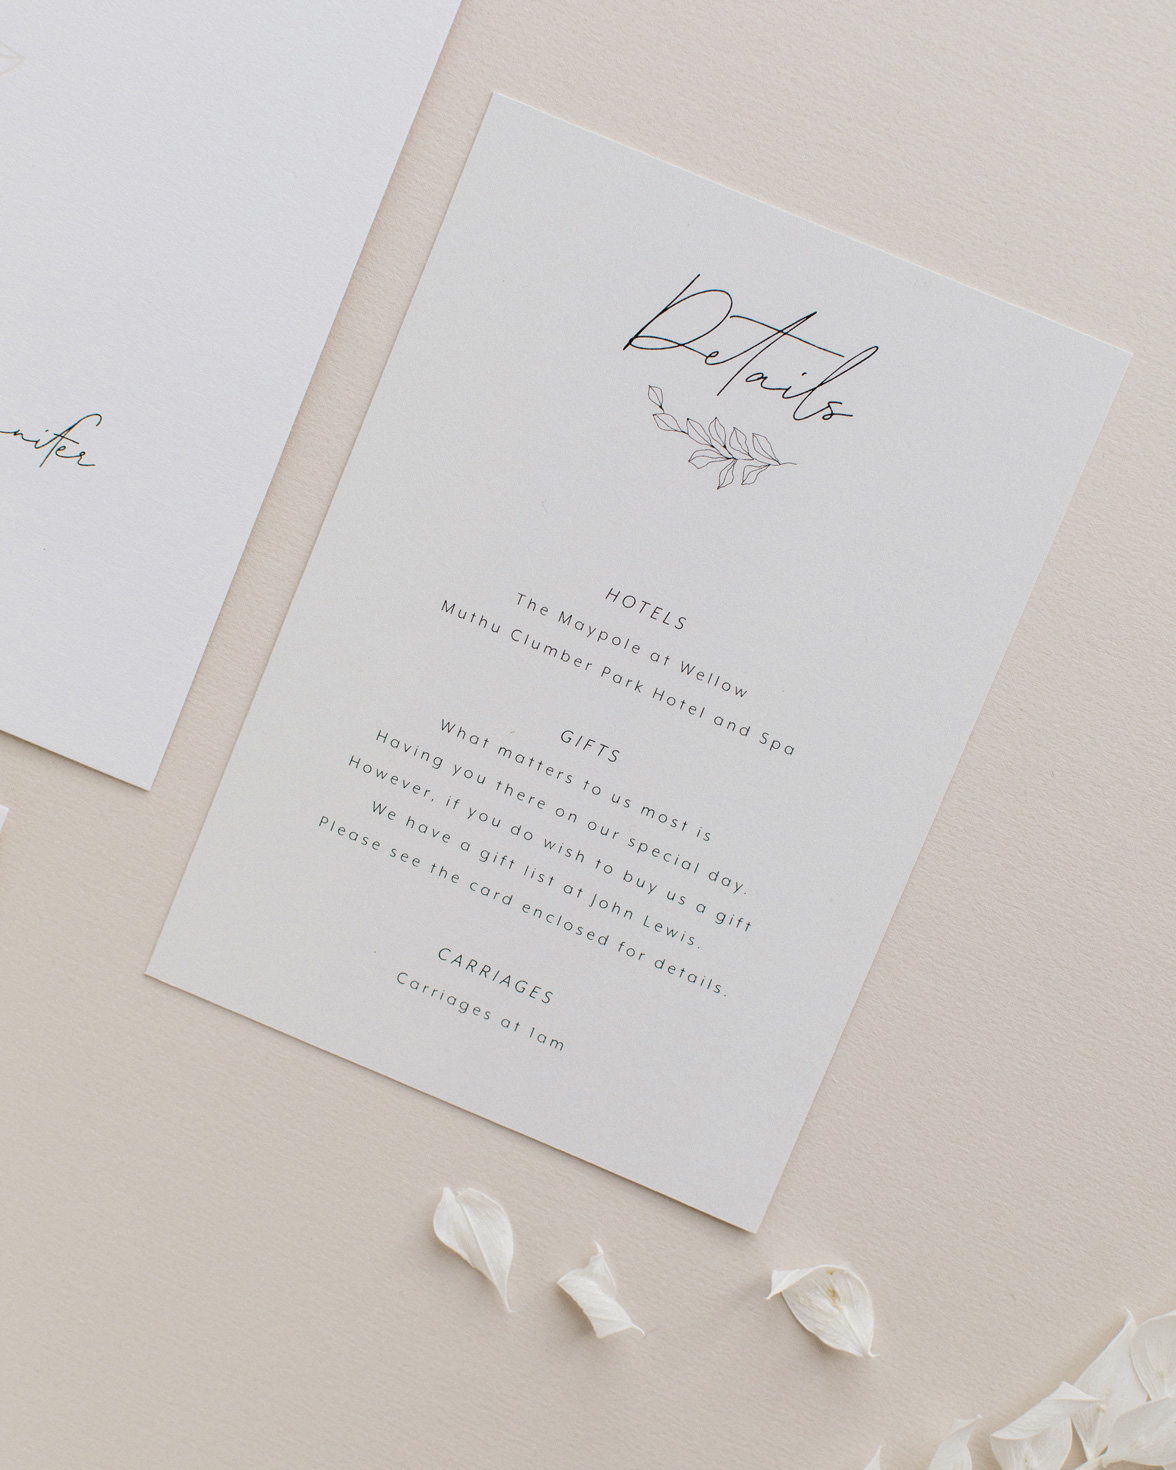 Fleur Classique wedding details card. Natural tones with hand drawn flower motif